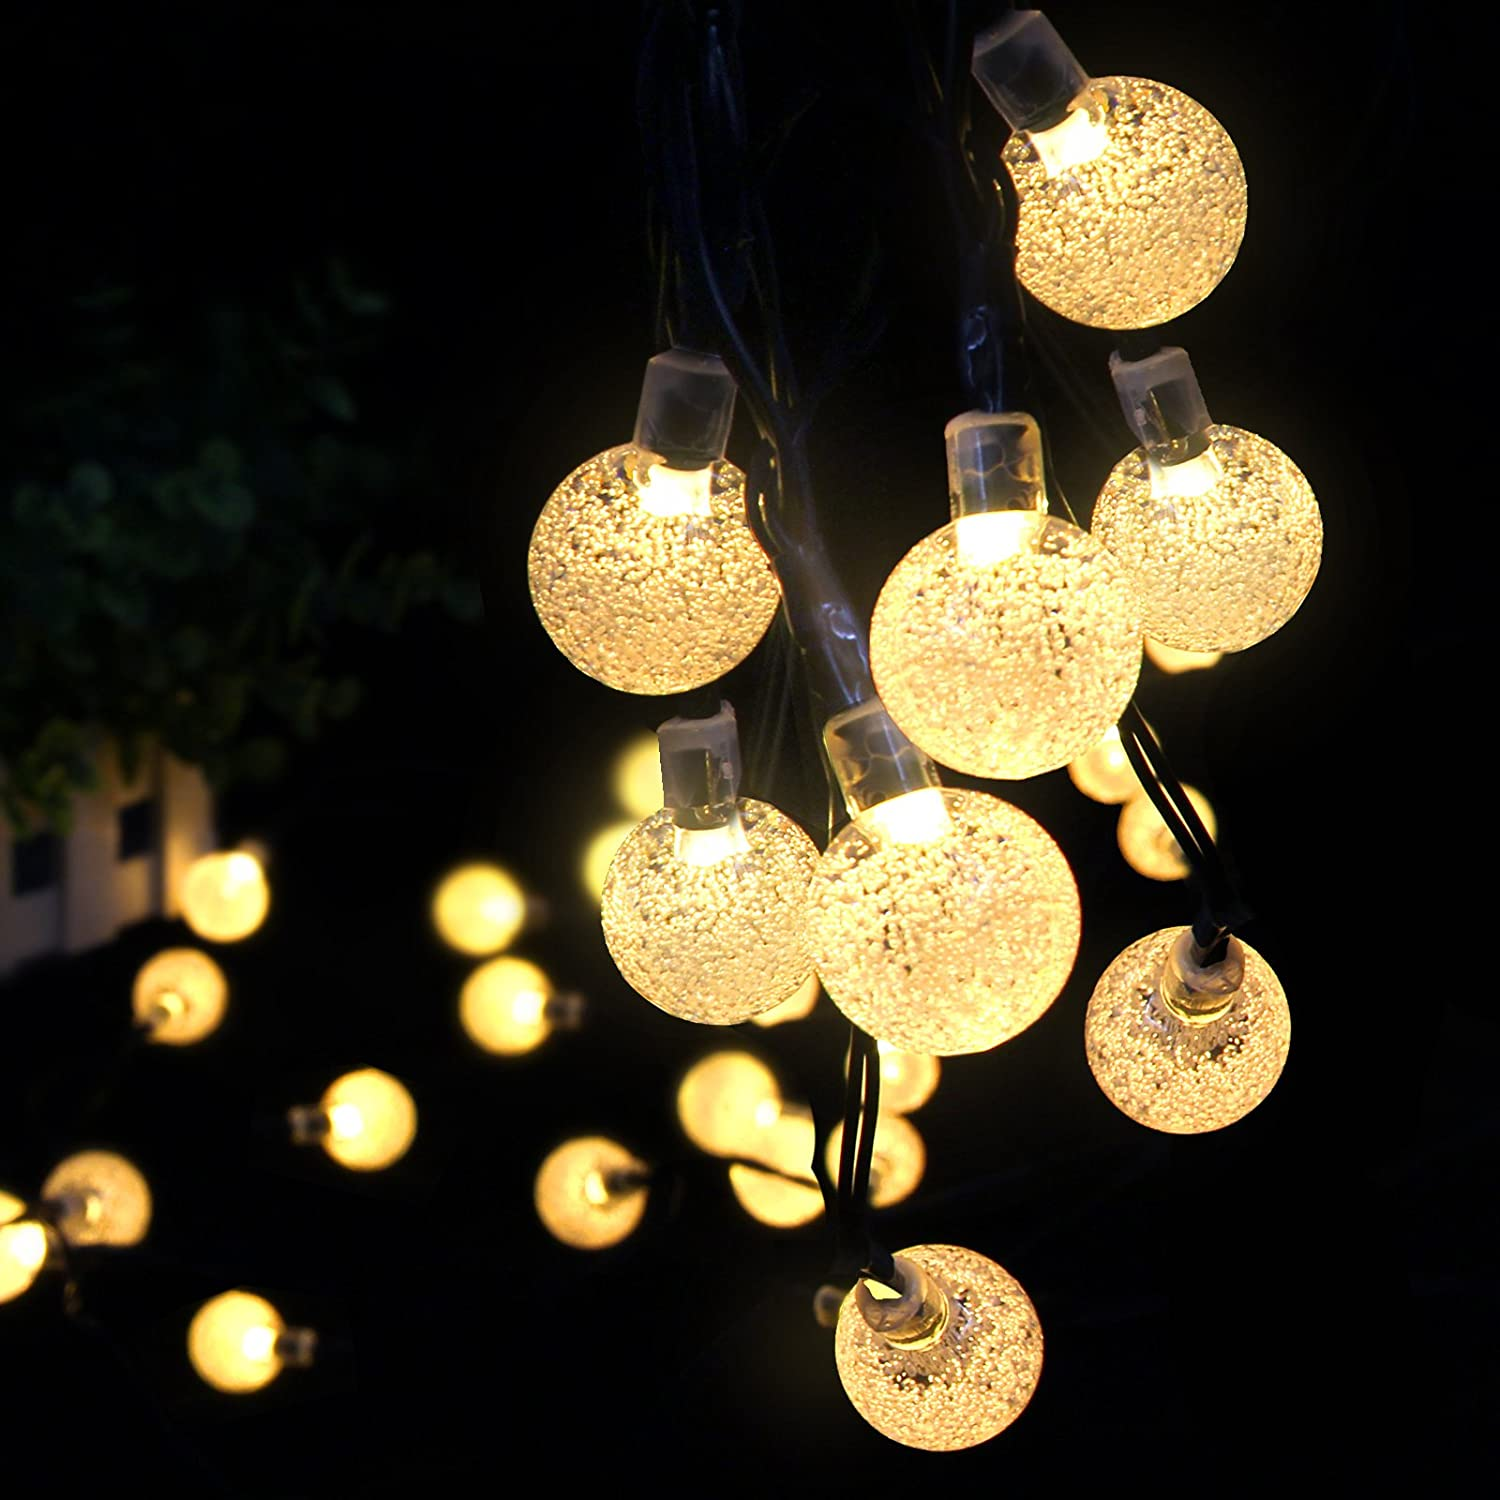 Solar outdoor string lights ascher 30 led fairy light warm white solar outdoor string lights ascher 30 led fairy light warm white crystal ball christmas globe lights for outdoor yard garden homegarden pathchrismas aloadofball Images